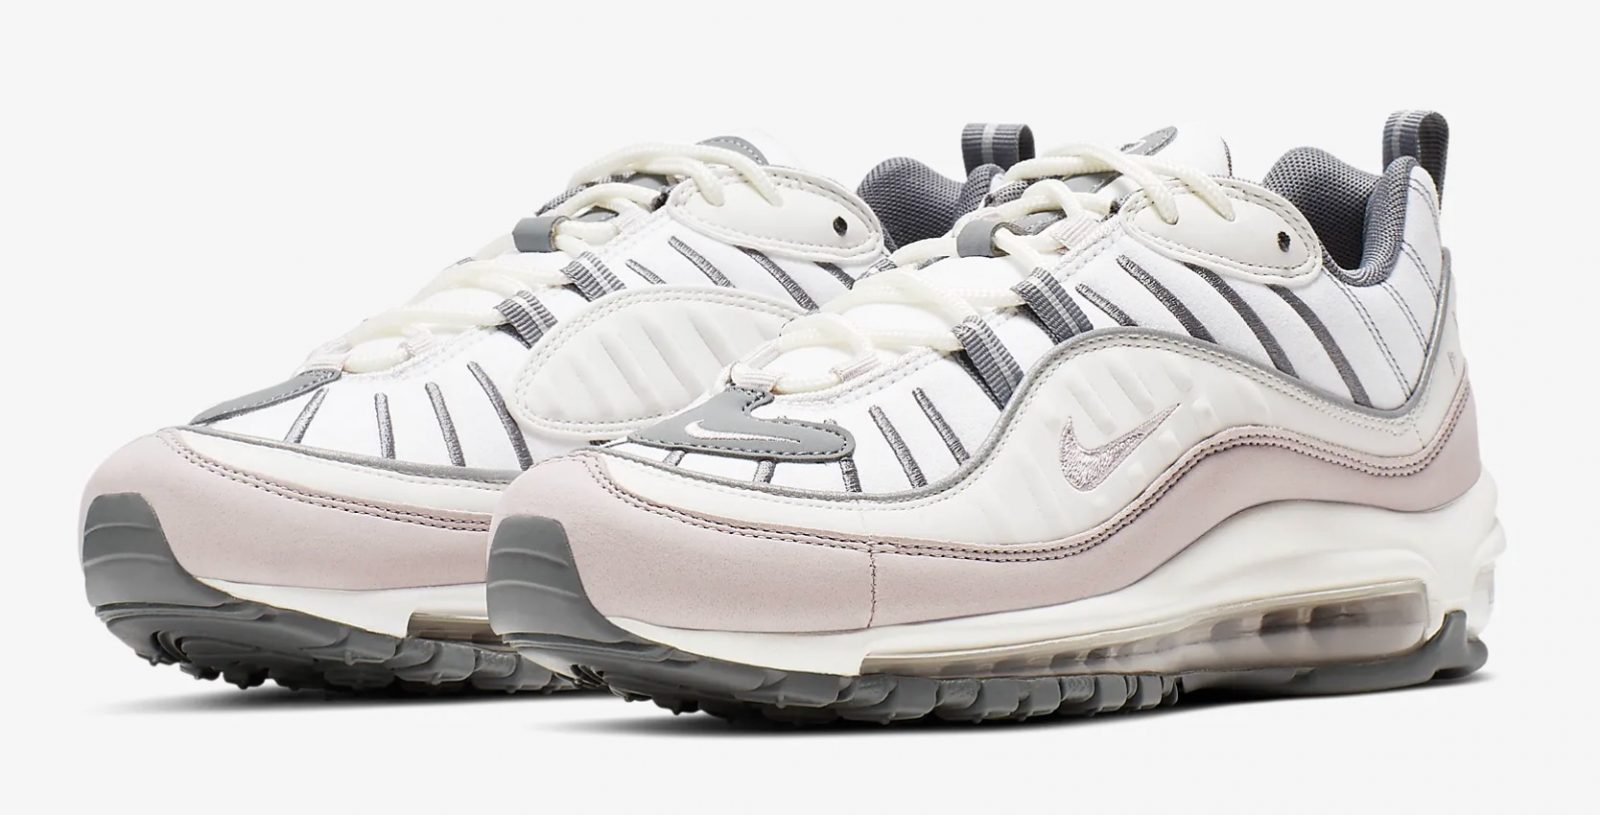 Don't Miss The Last Sizes Of This Air Max 98 'Violet Ash' In Nike's Sale 4